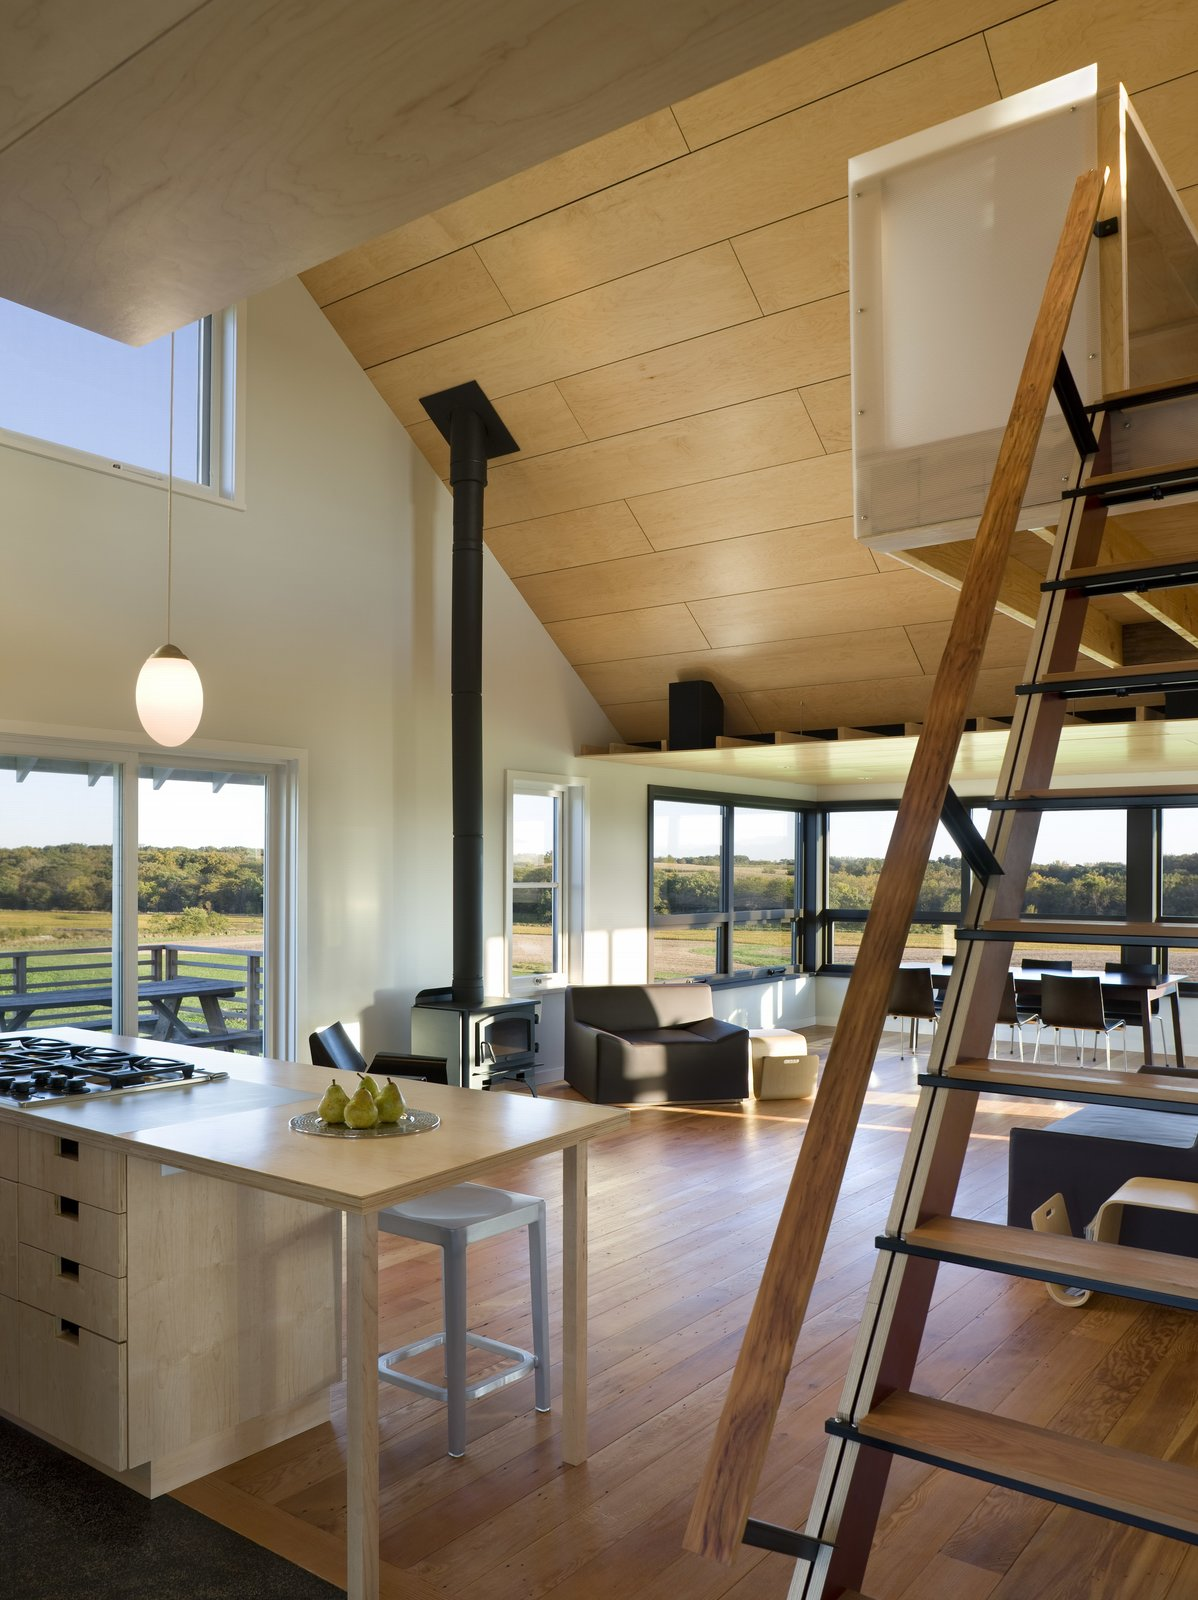 Sliding fabric panels allow the enclosed porch to be used for dining or overflow sleeping. A loft overlooking the main living space and views of the farm serves as office space.  Photo 2 of 10 in 10 Enclosed Porches That Are Put to Good Use from Yum Yum Farm